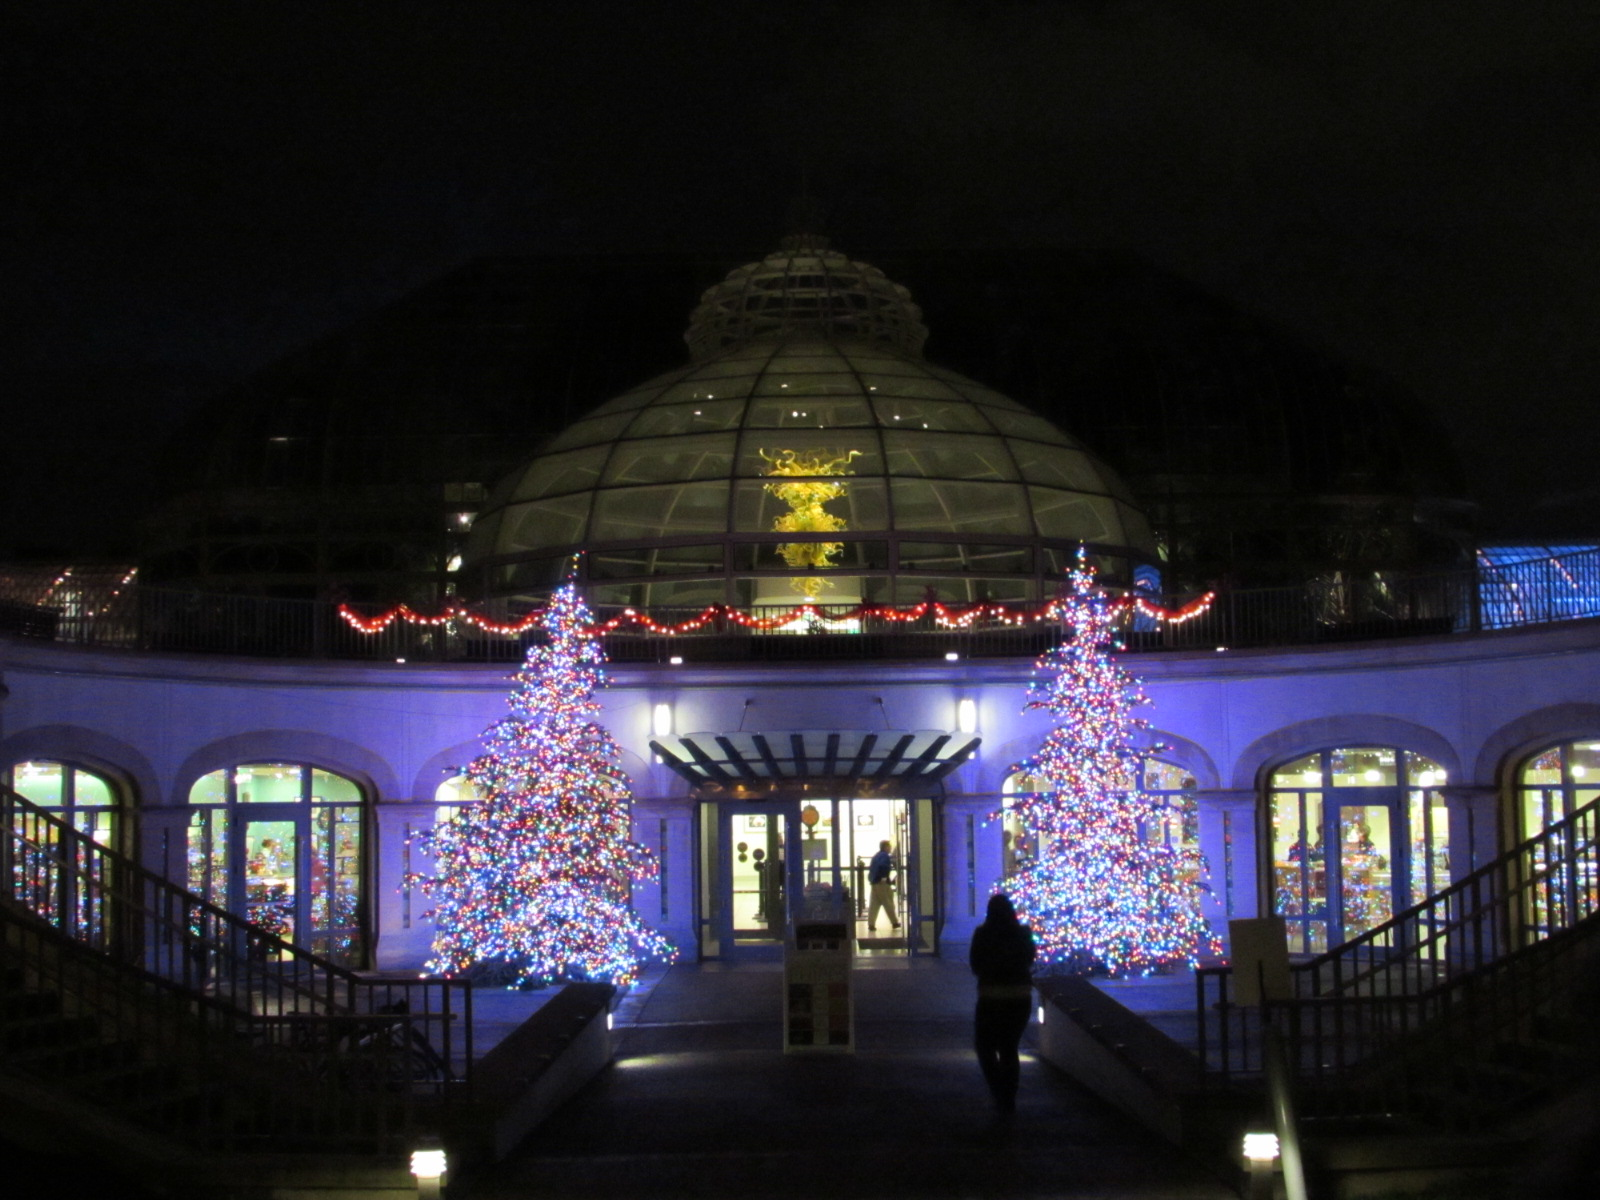 this is a world class event at a world class venue the always awesome botanical gardens get completely decked out in holiday splendor